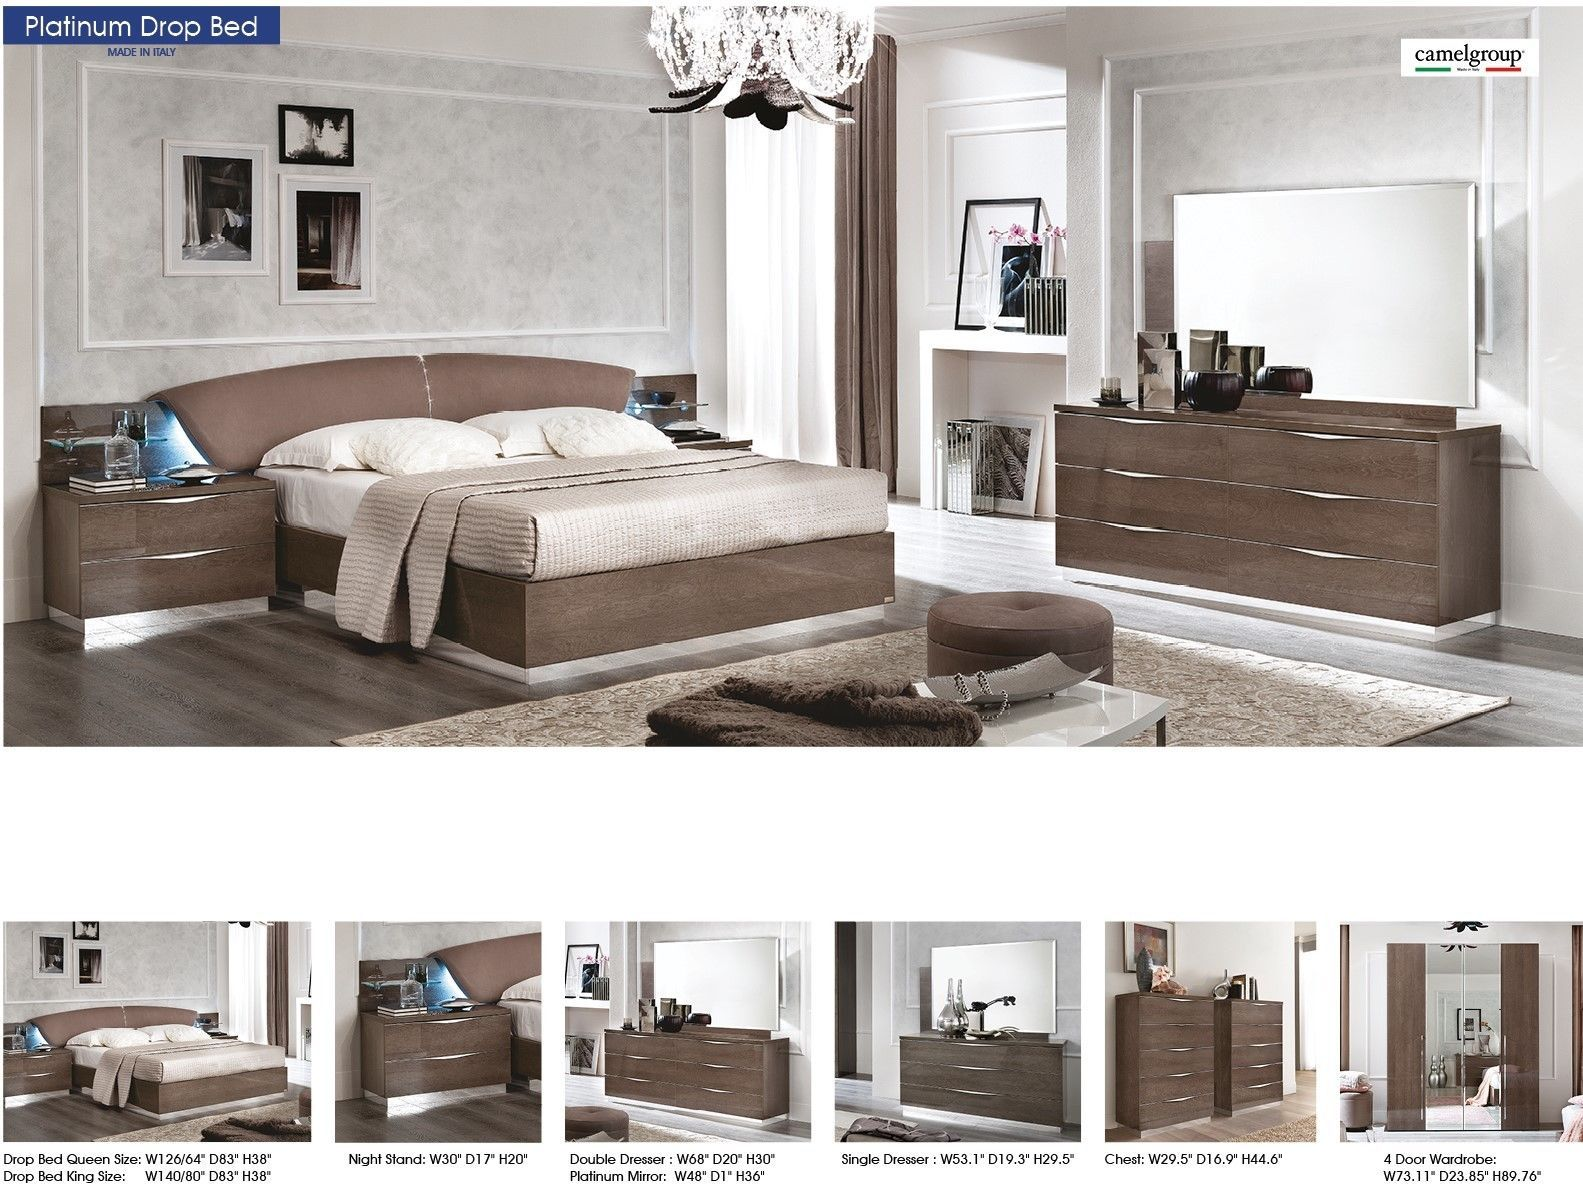 ESF Platinum Drop Queen Size Bedroom Set Chic Contemporary Modern 2 Night Stands